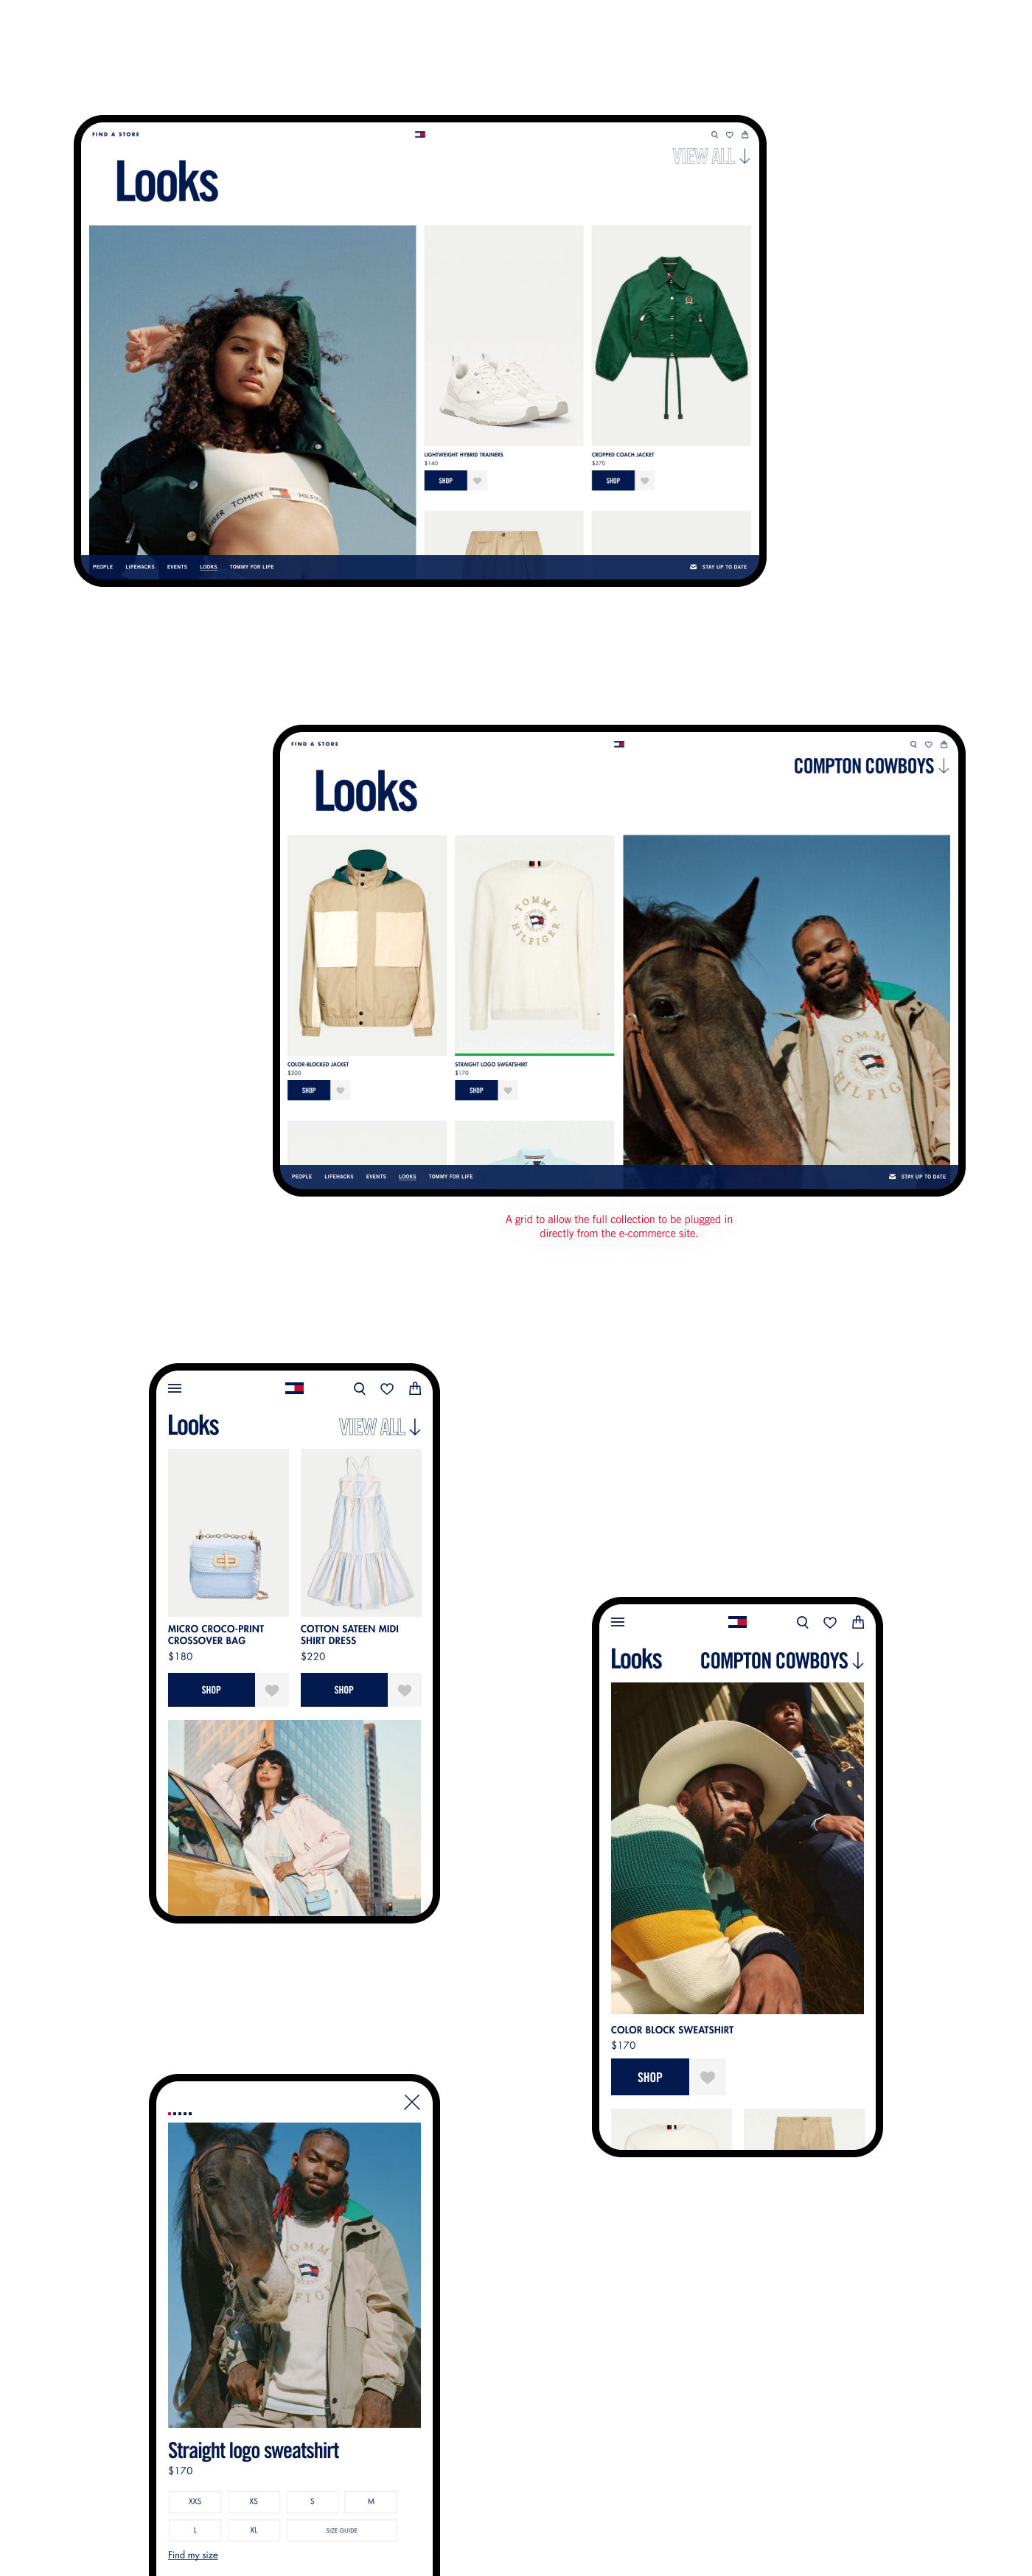 The ecommerce side of the project, featuring Indya Moore, The Compton Cowboys and Jameela Jamil.